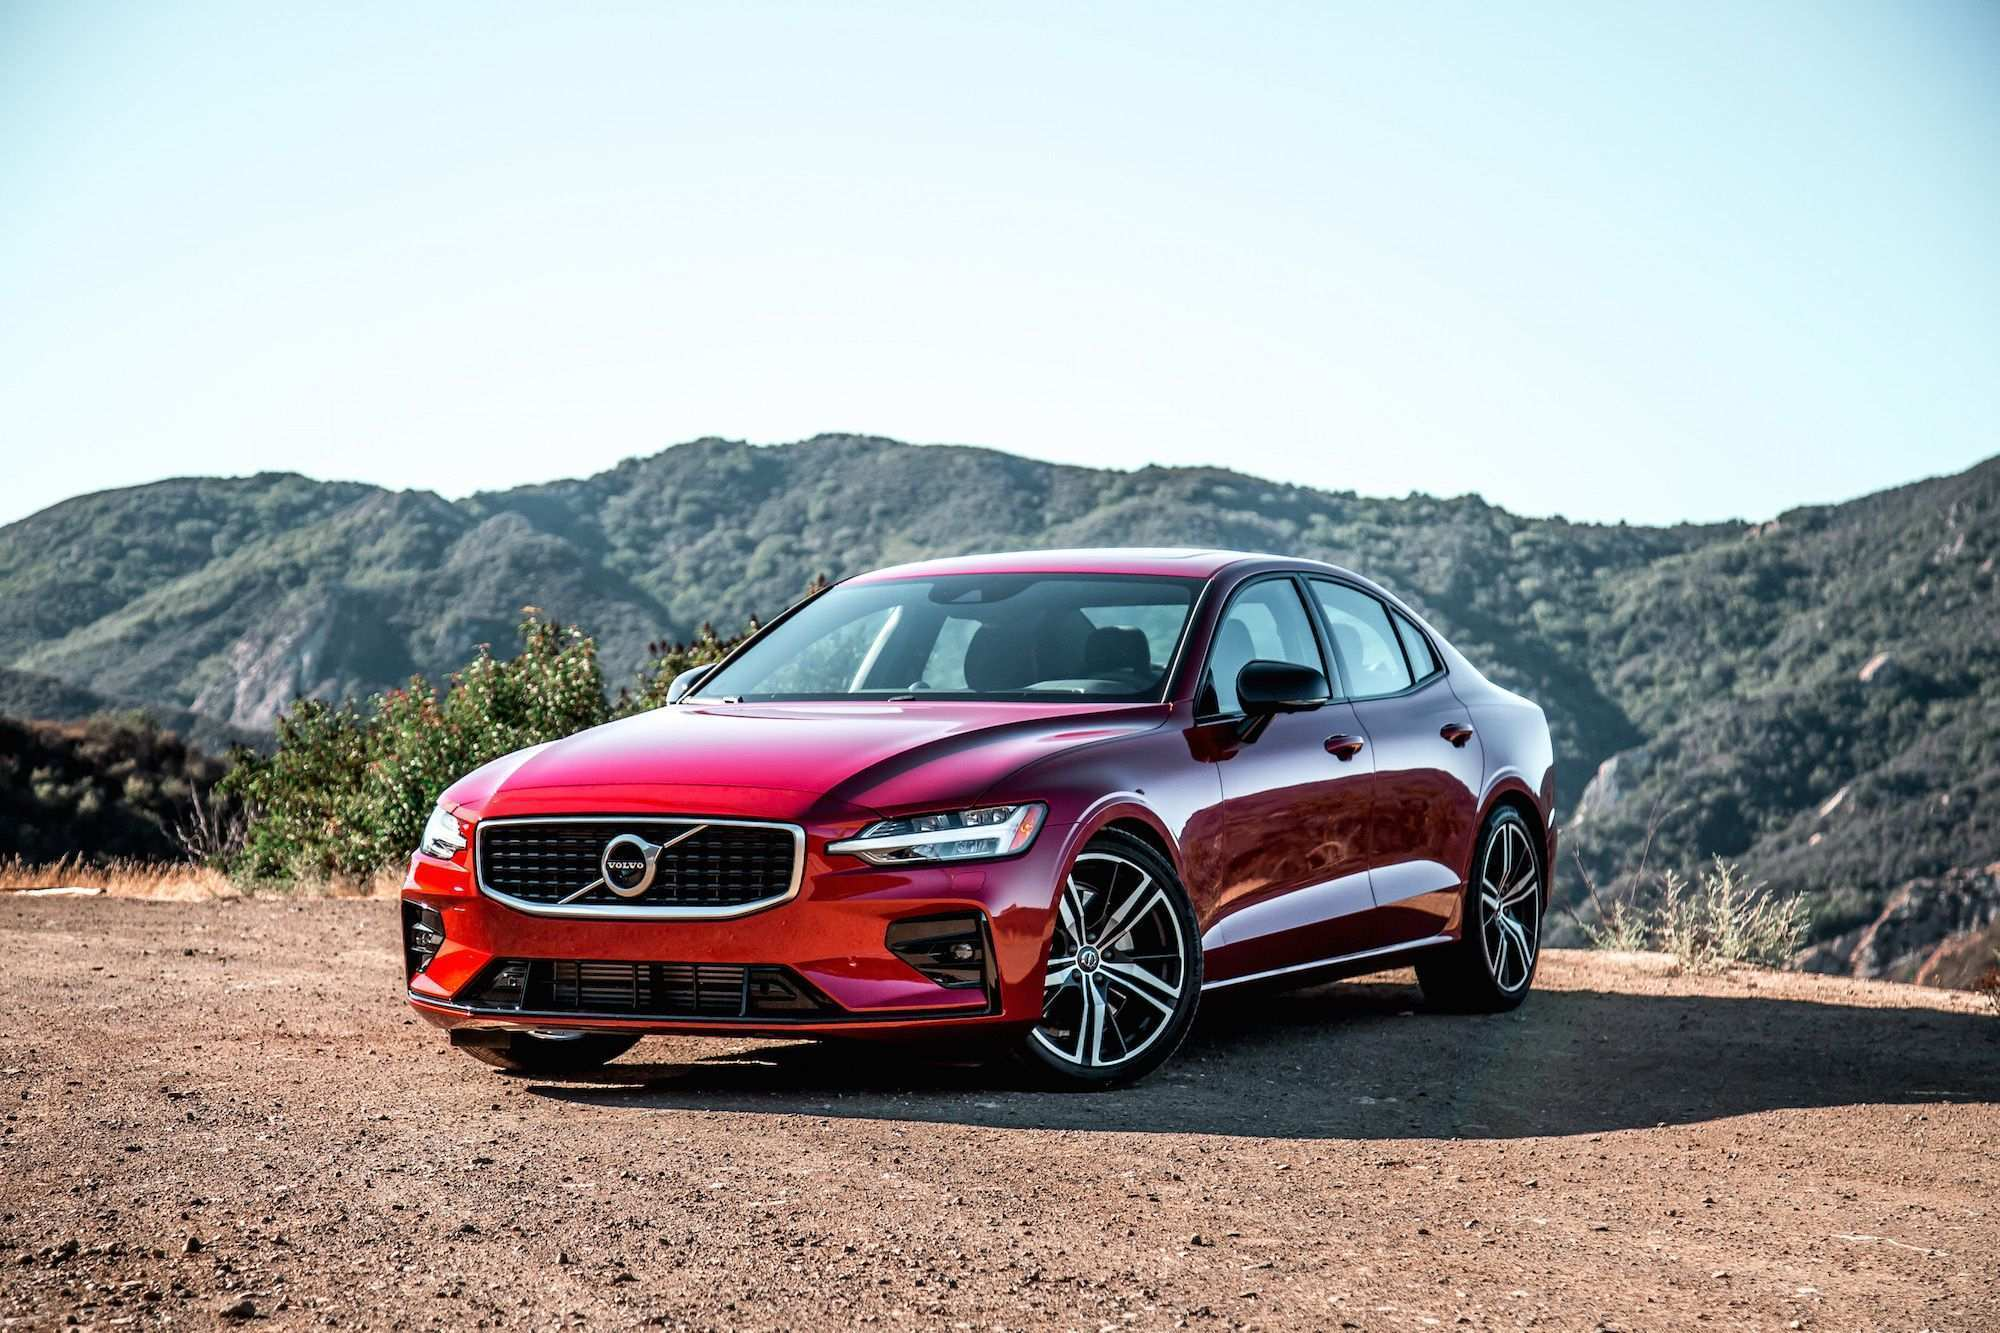 87 New Volvo Range 2020 New Review with Volvo Range 2020